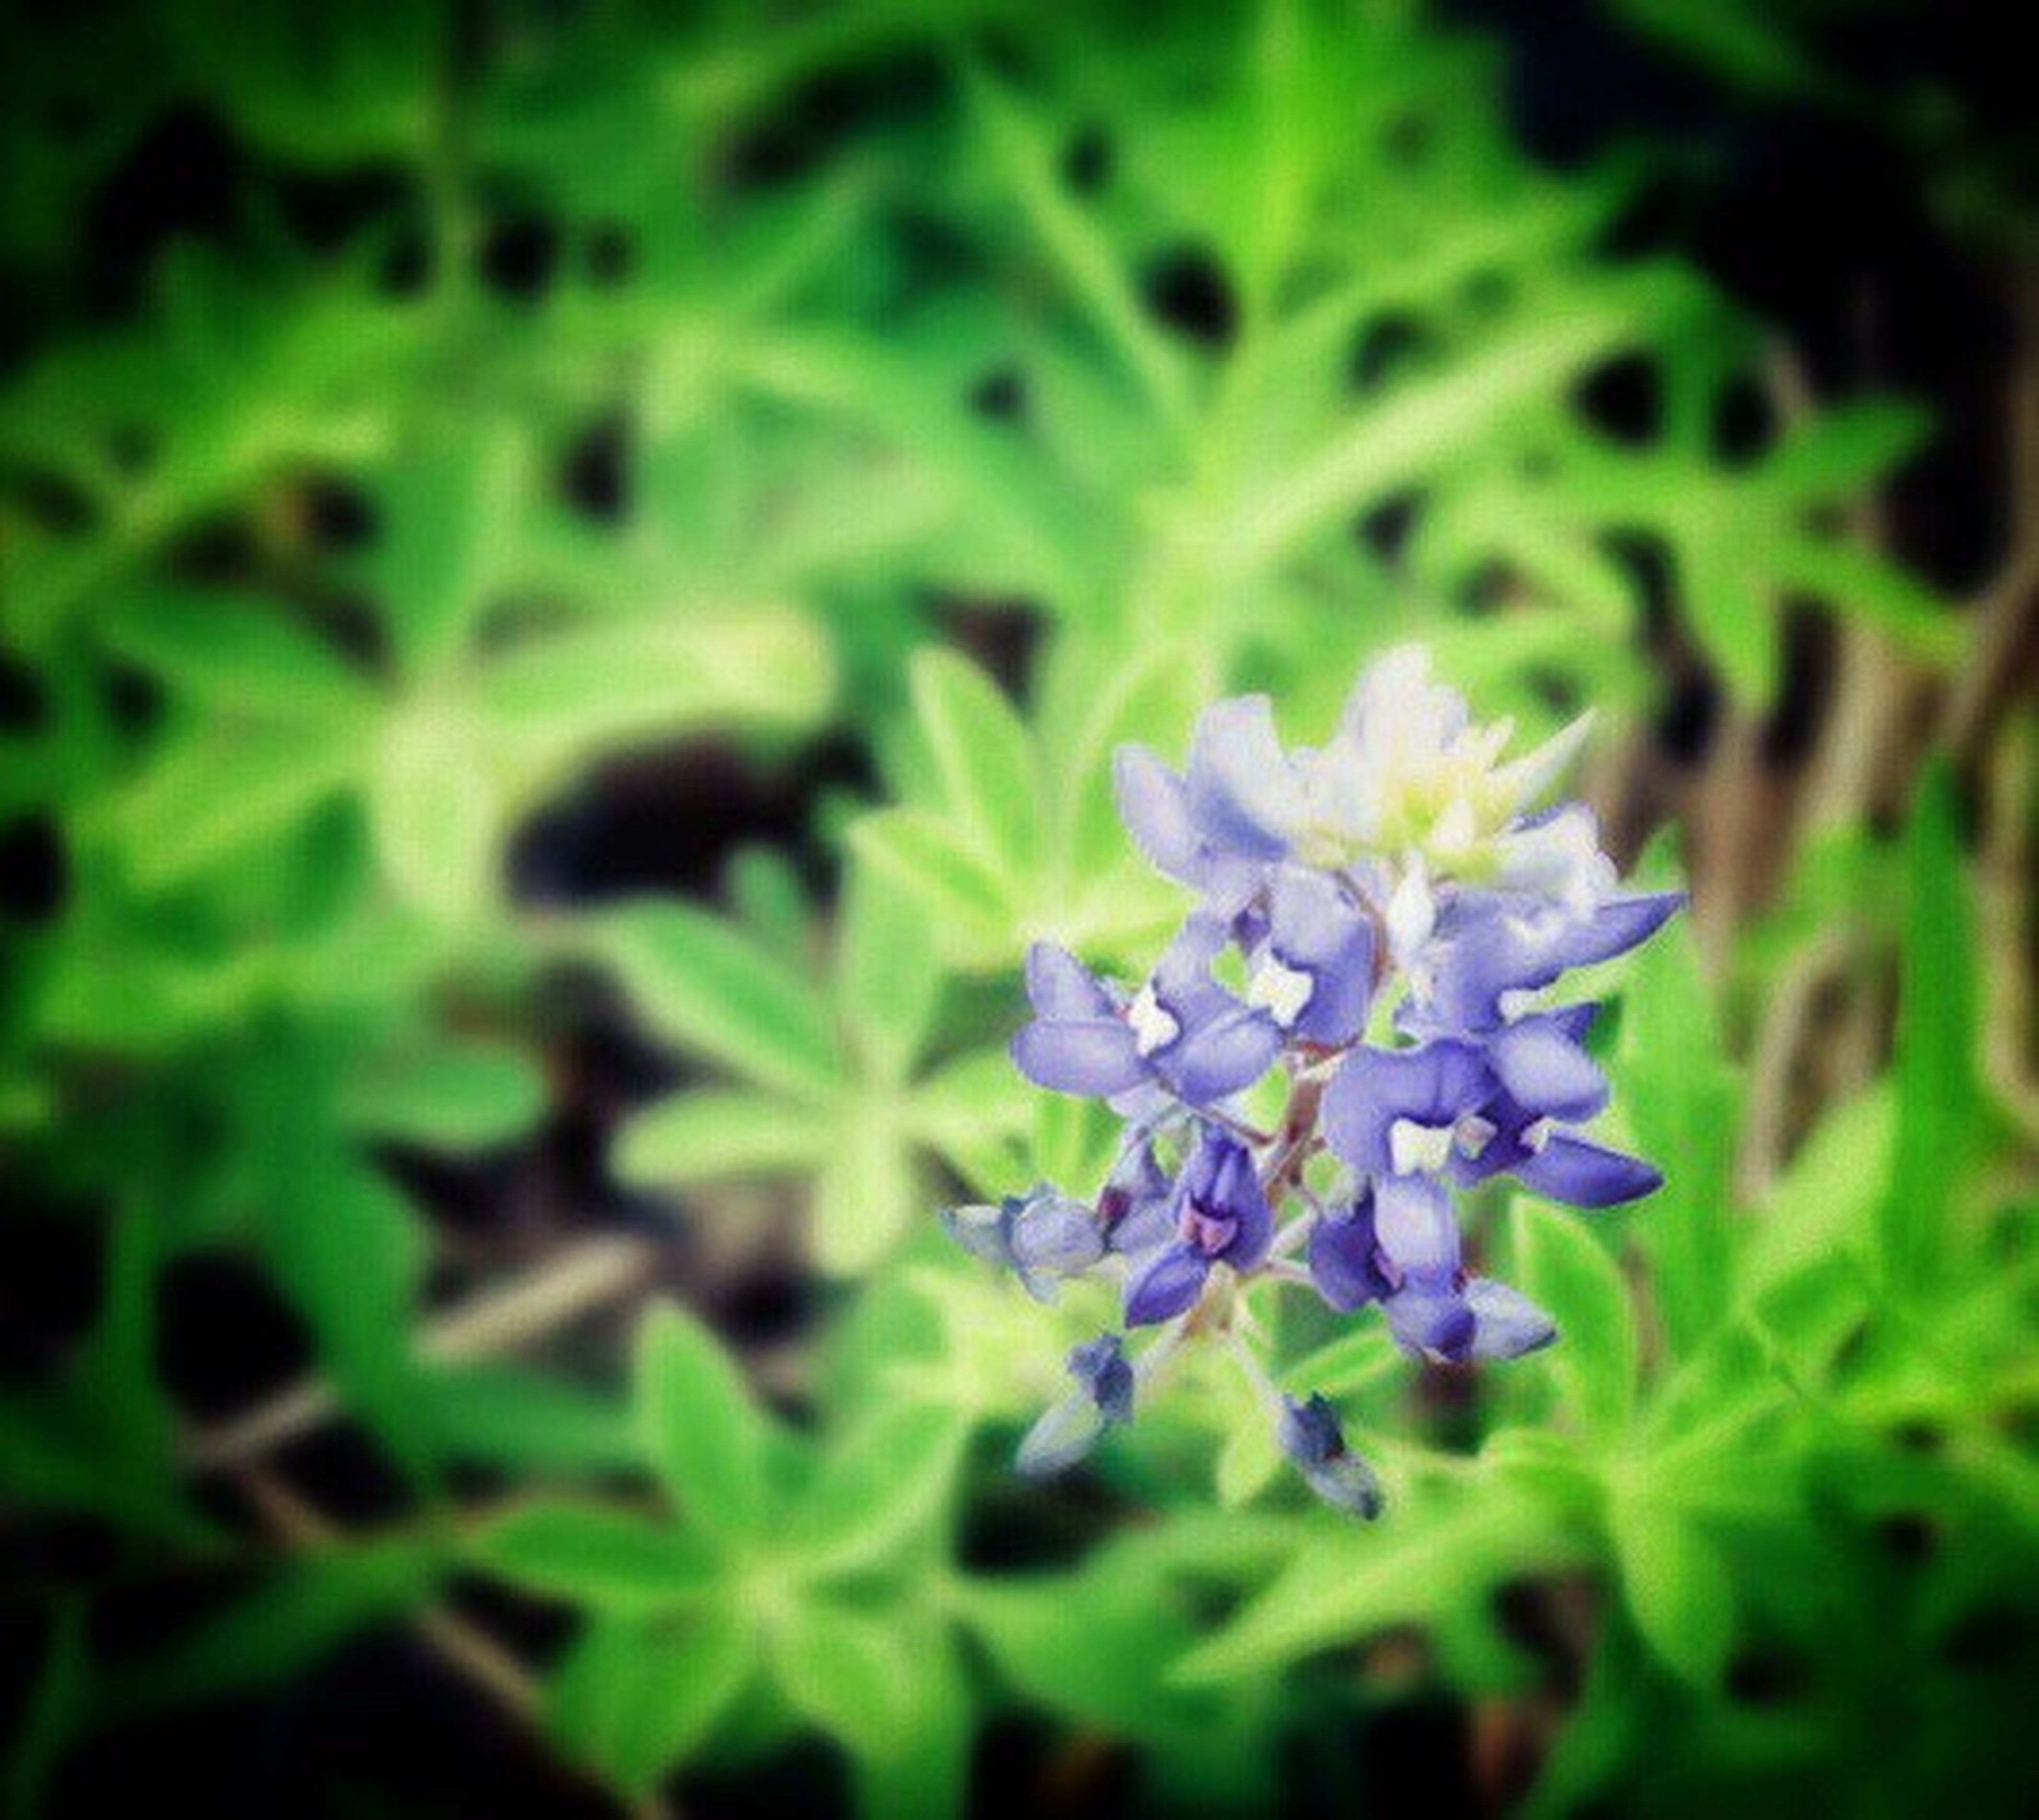 flower, growth, freshness, fragility, plant, purple, petal, beauty in nature, close-up, nature, green color, flower head, blooming, focus on foreground, leaf, selective focus, in bloom, no people, outdoors, day, botany, green, blue, growing, tranquility, softness